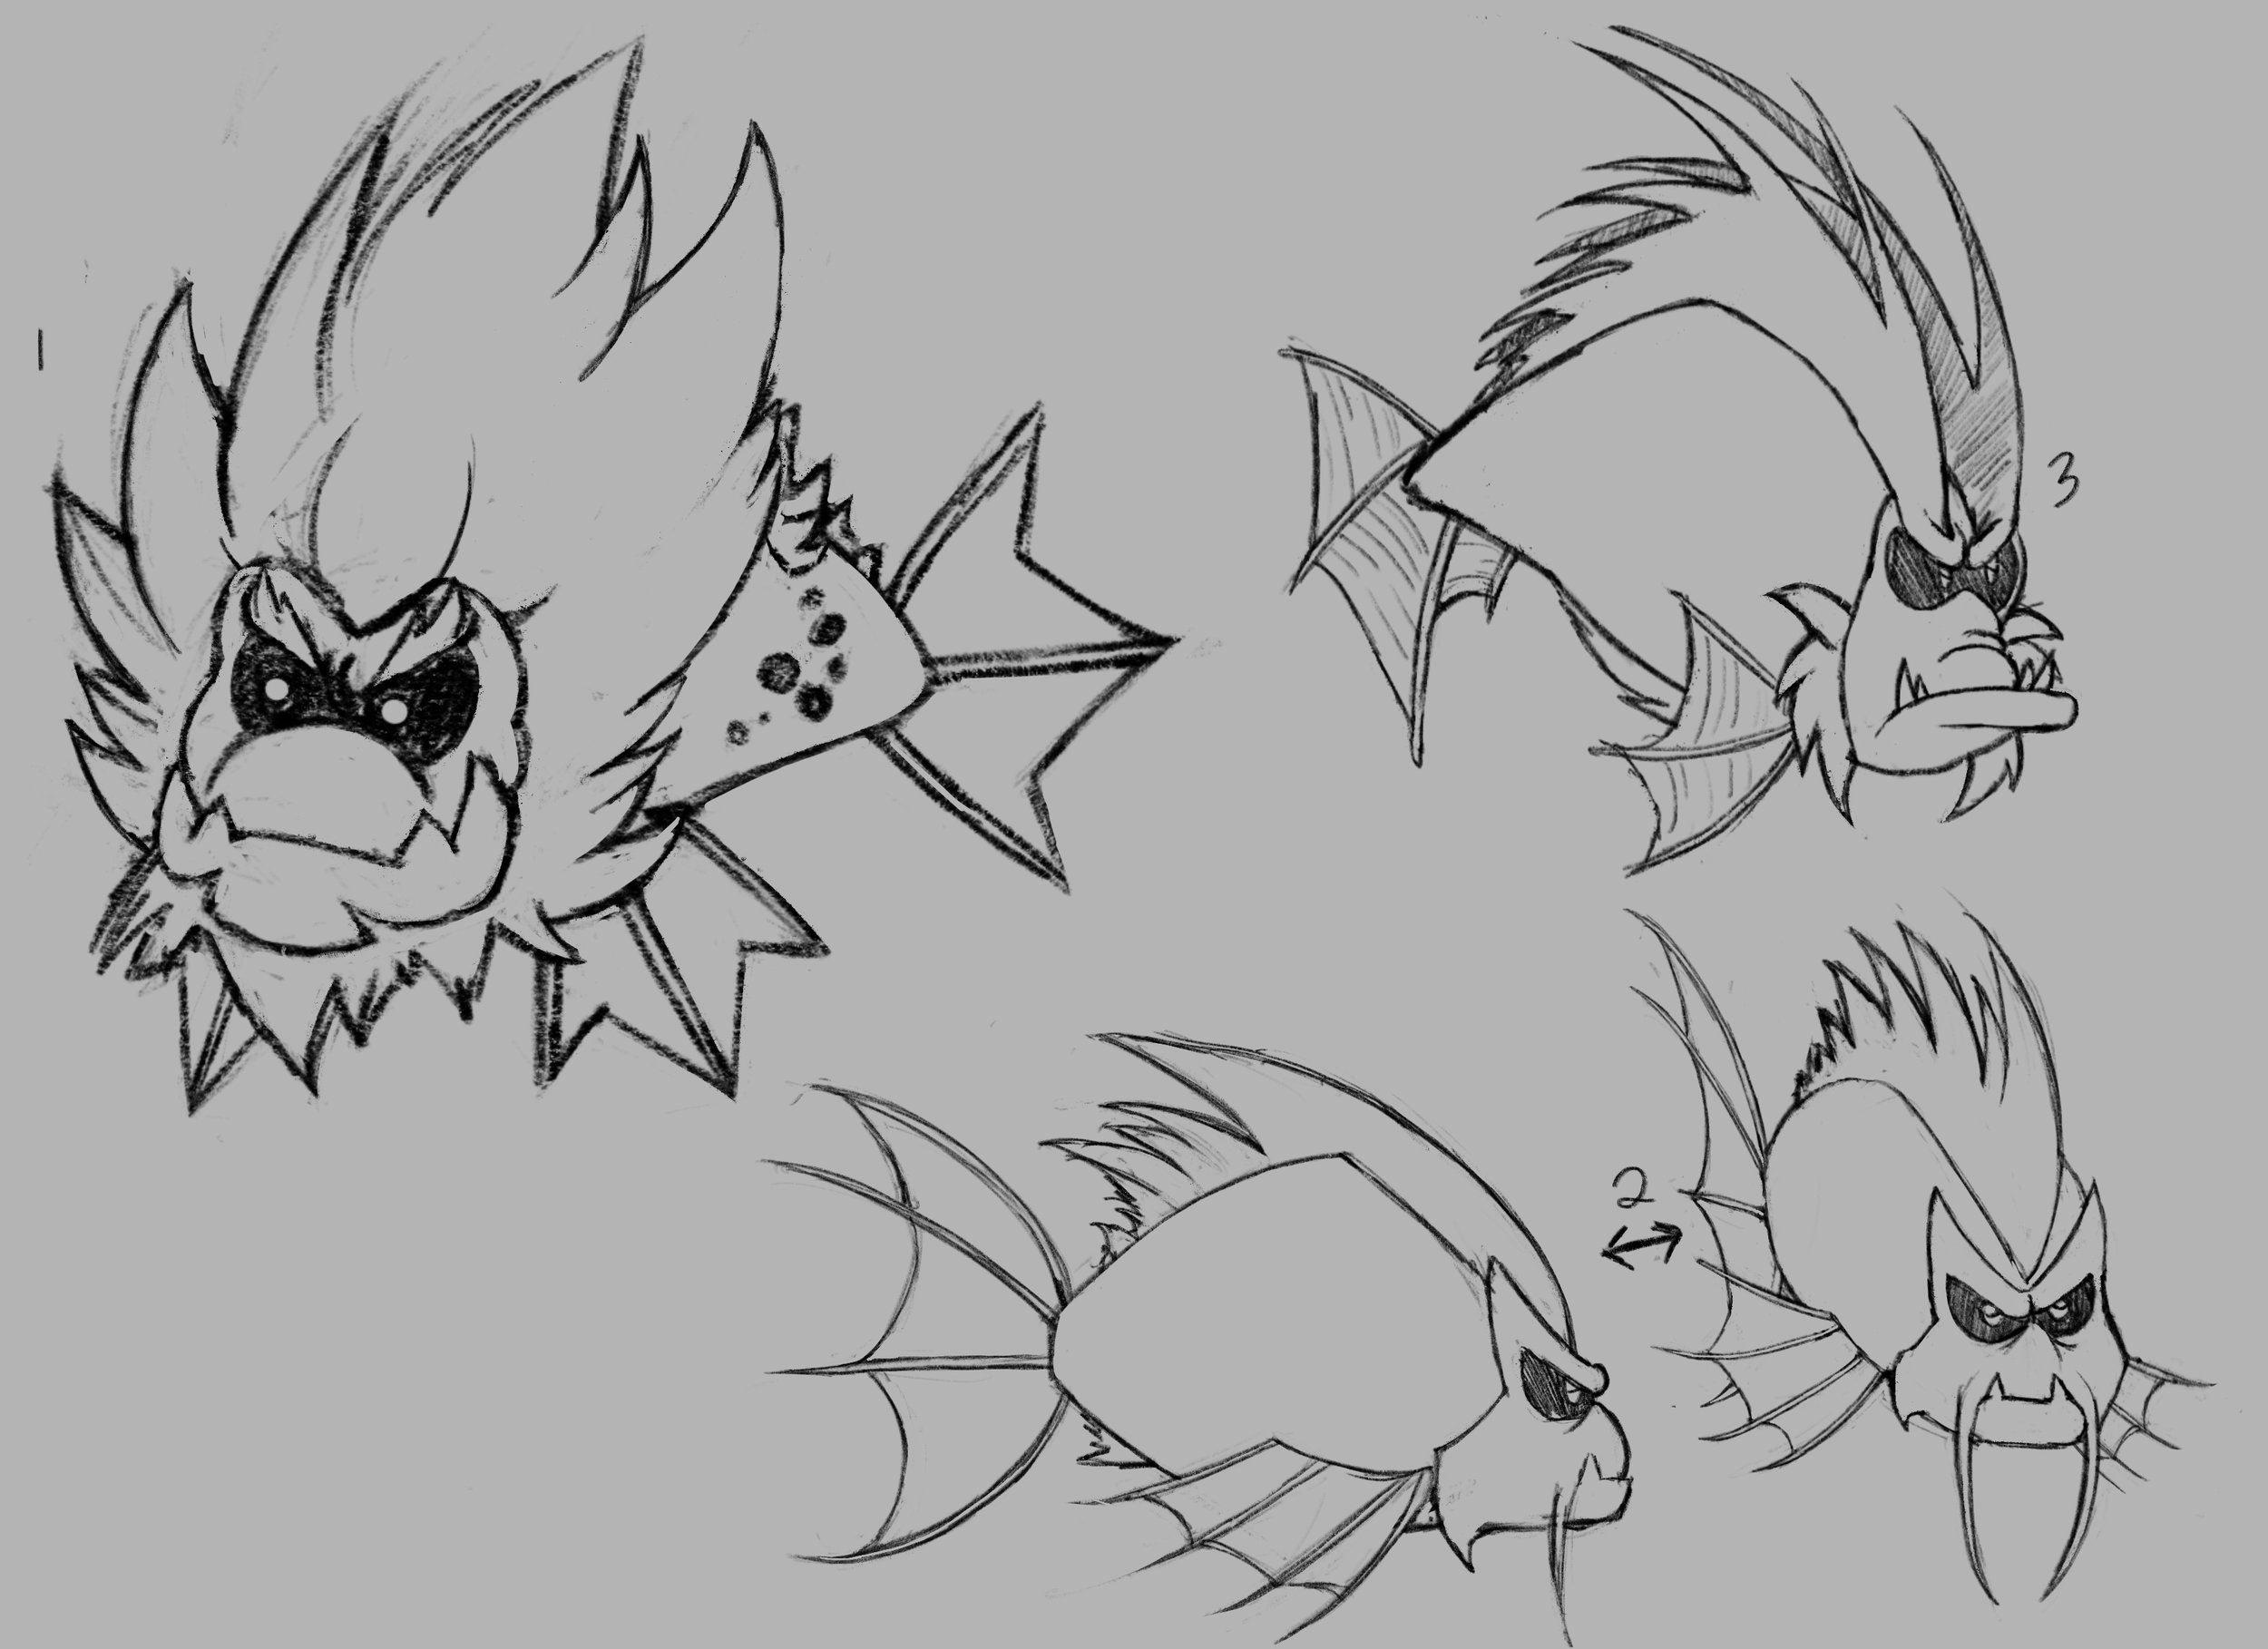 Lion Fishkers - one of the many types of Fishker enemies